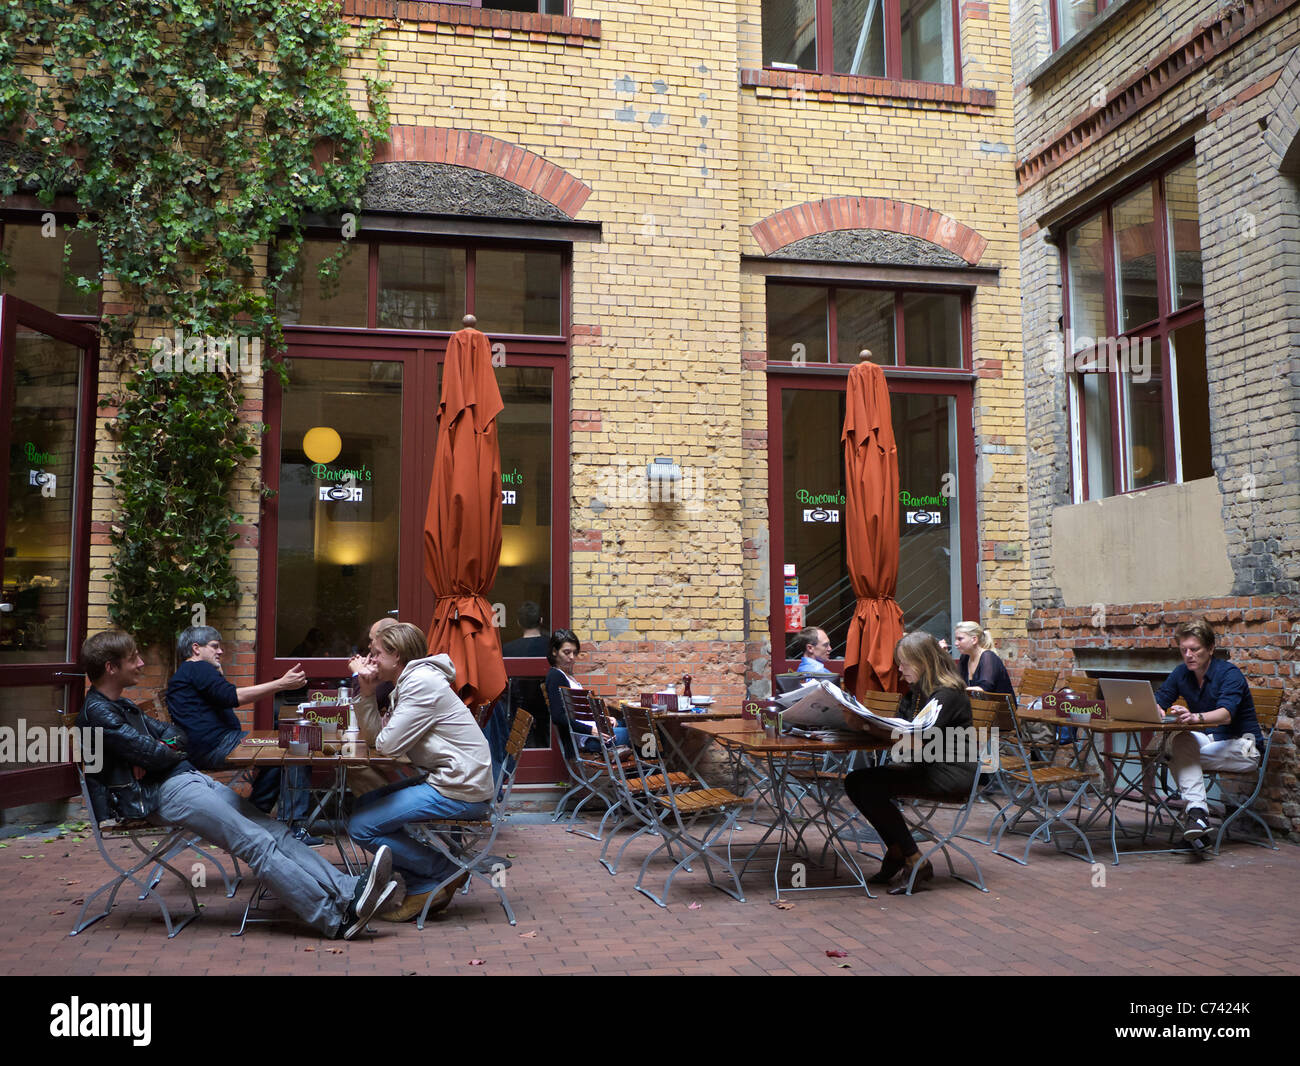 barcomis cafe in sophie gips courtyard in mitte district of berlin in stock photo royalty free. Black Bedroom Furniture Sets. Home Design Ideas